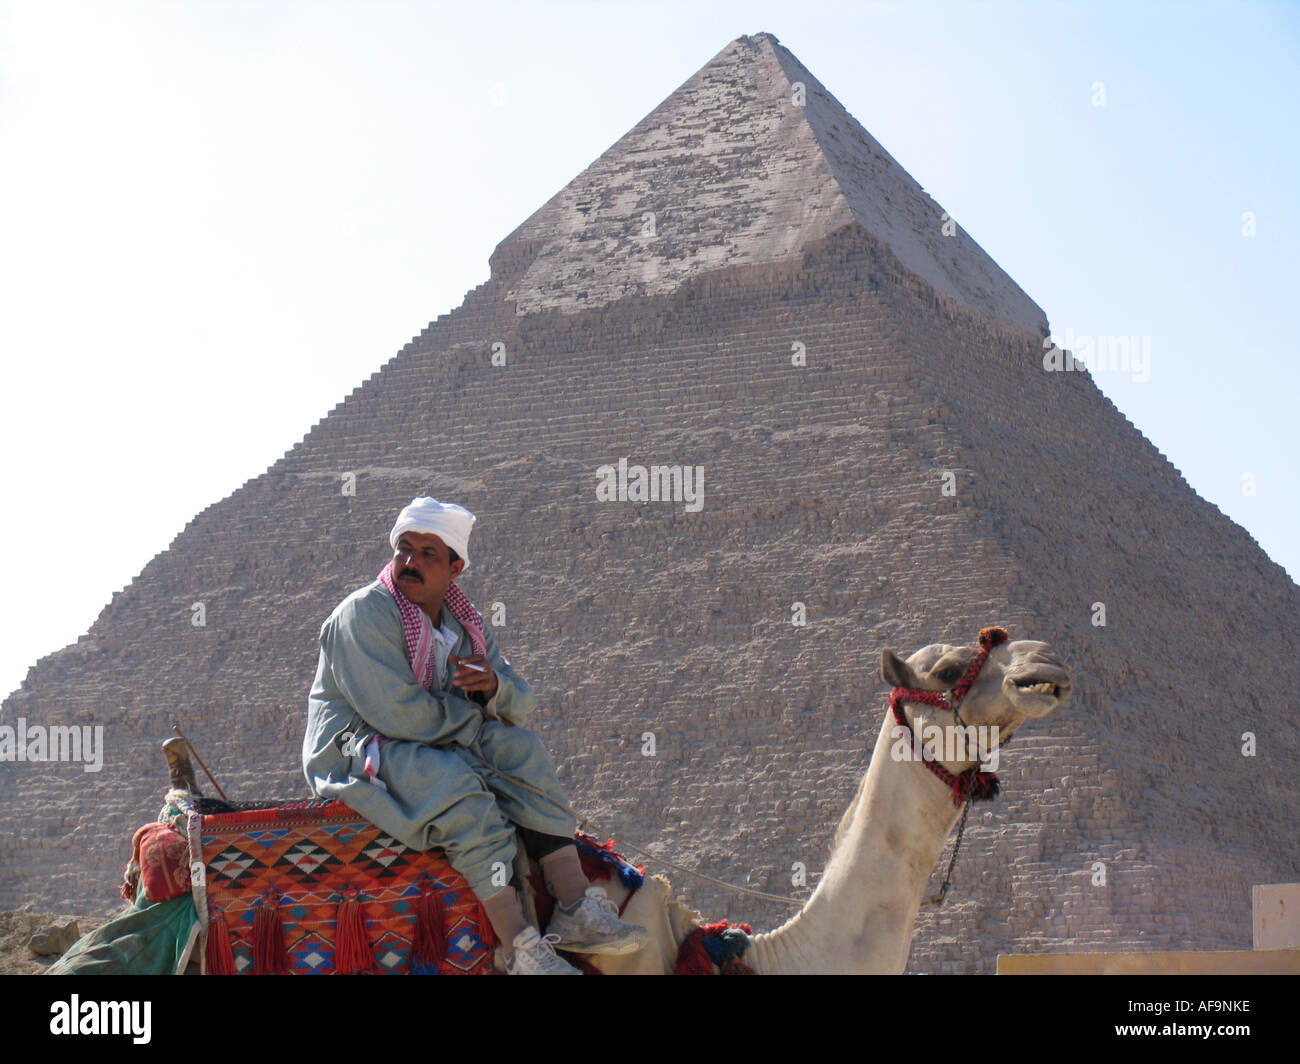 Smoking Egyptian man sitting on a camel in front of a pyramid in Giza, Egypt, Kairo, Giza, Gizeh, Giseh - Stock Image